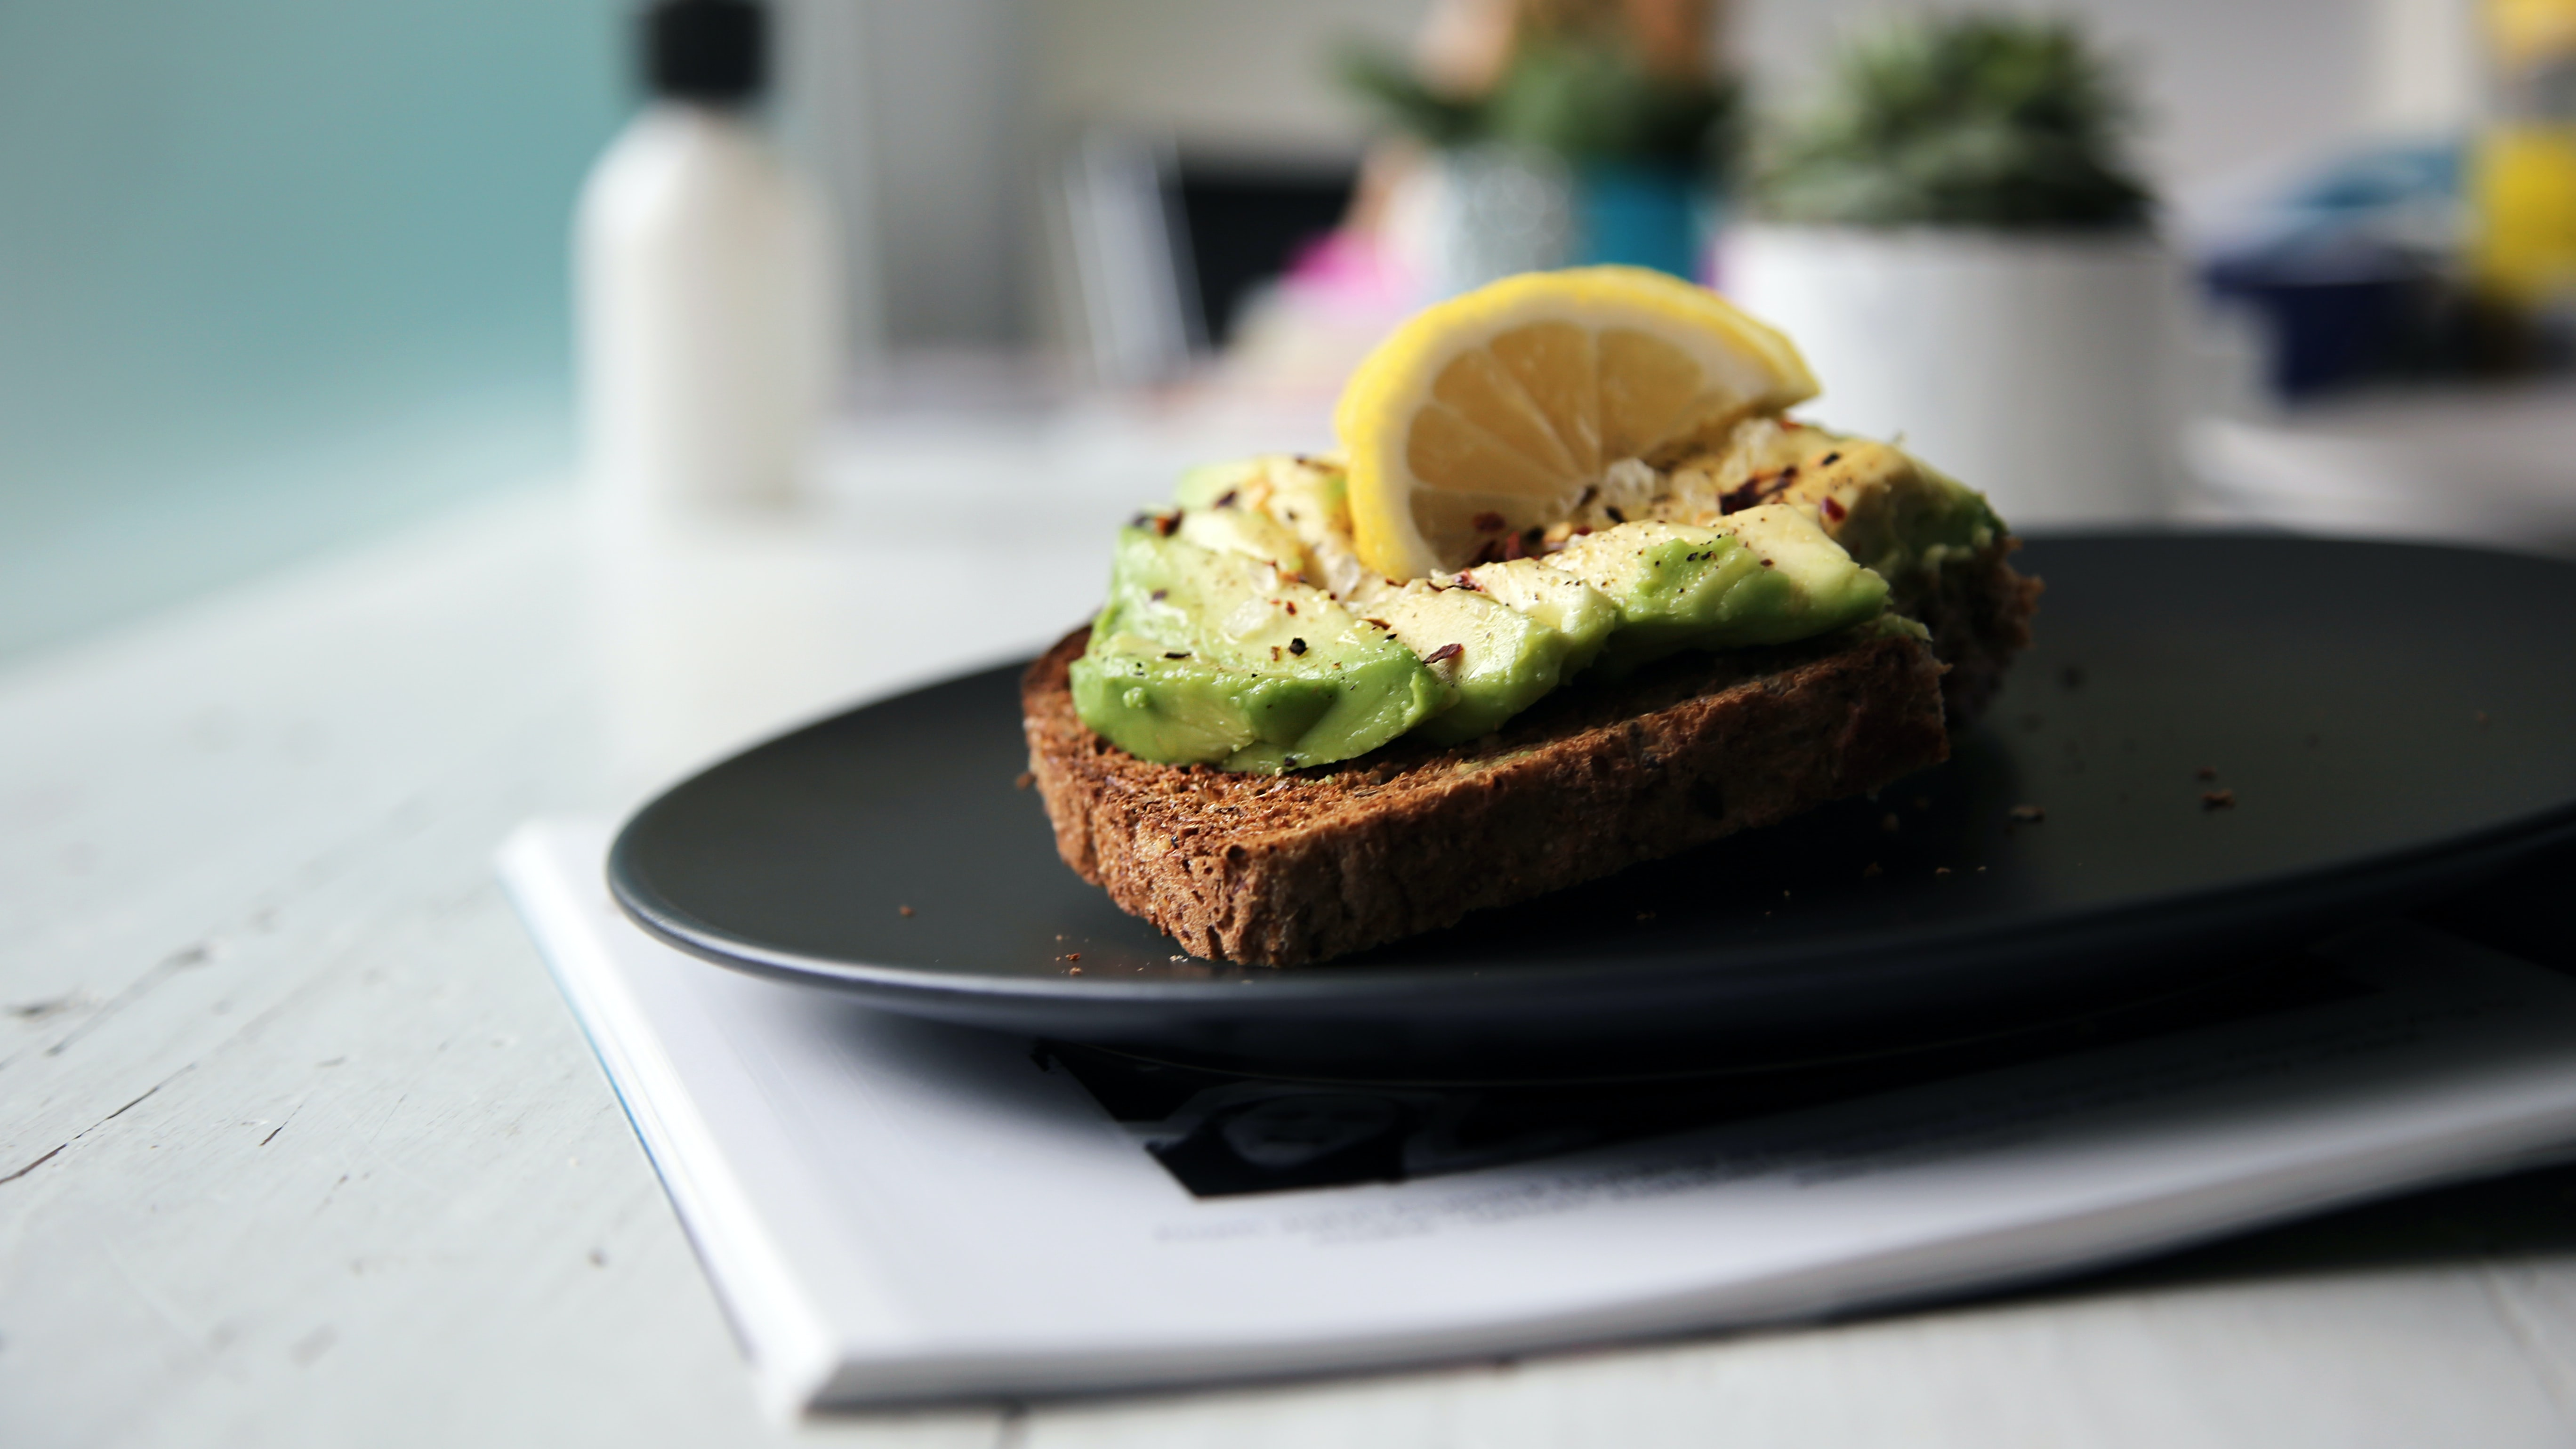 Slice of avocado toast with herbs and lemon